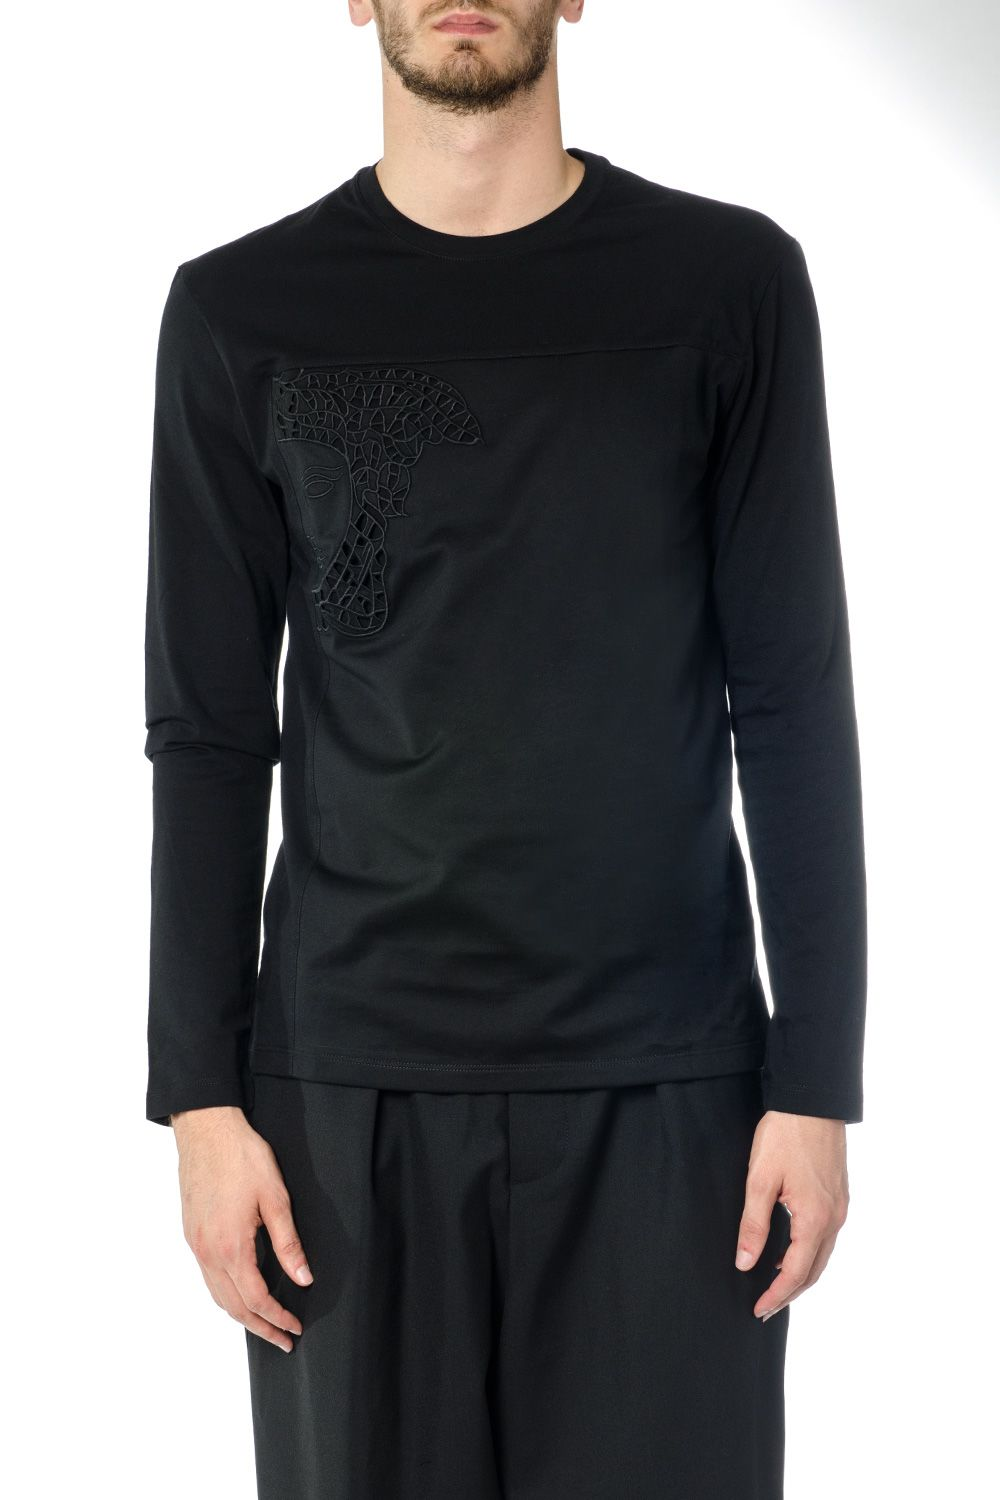 Versace Collection Medusa Embrodery Cotton T-shirt